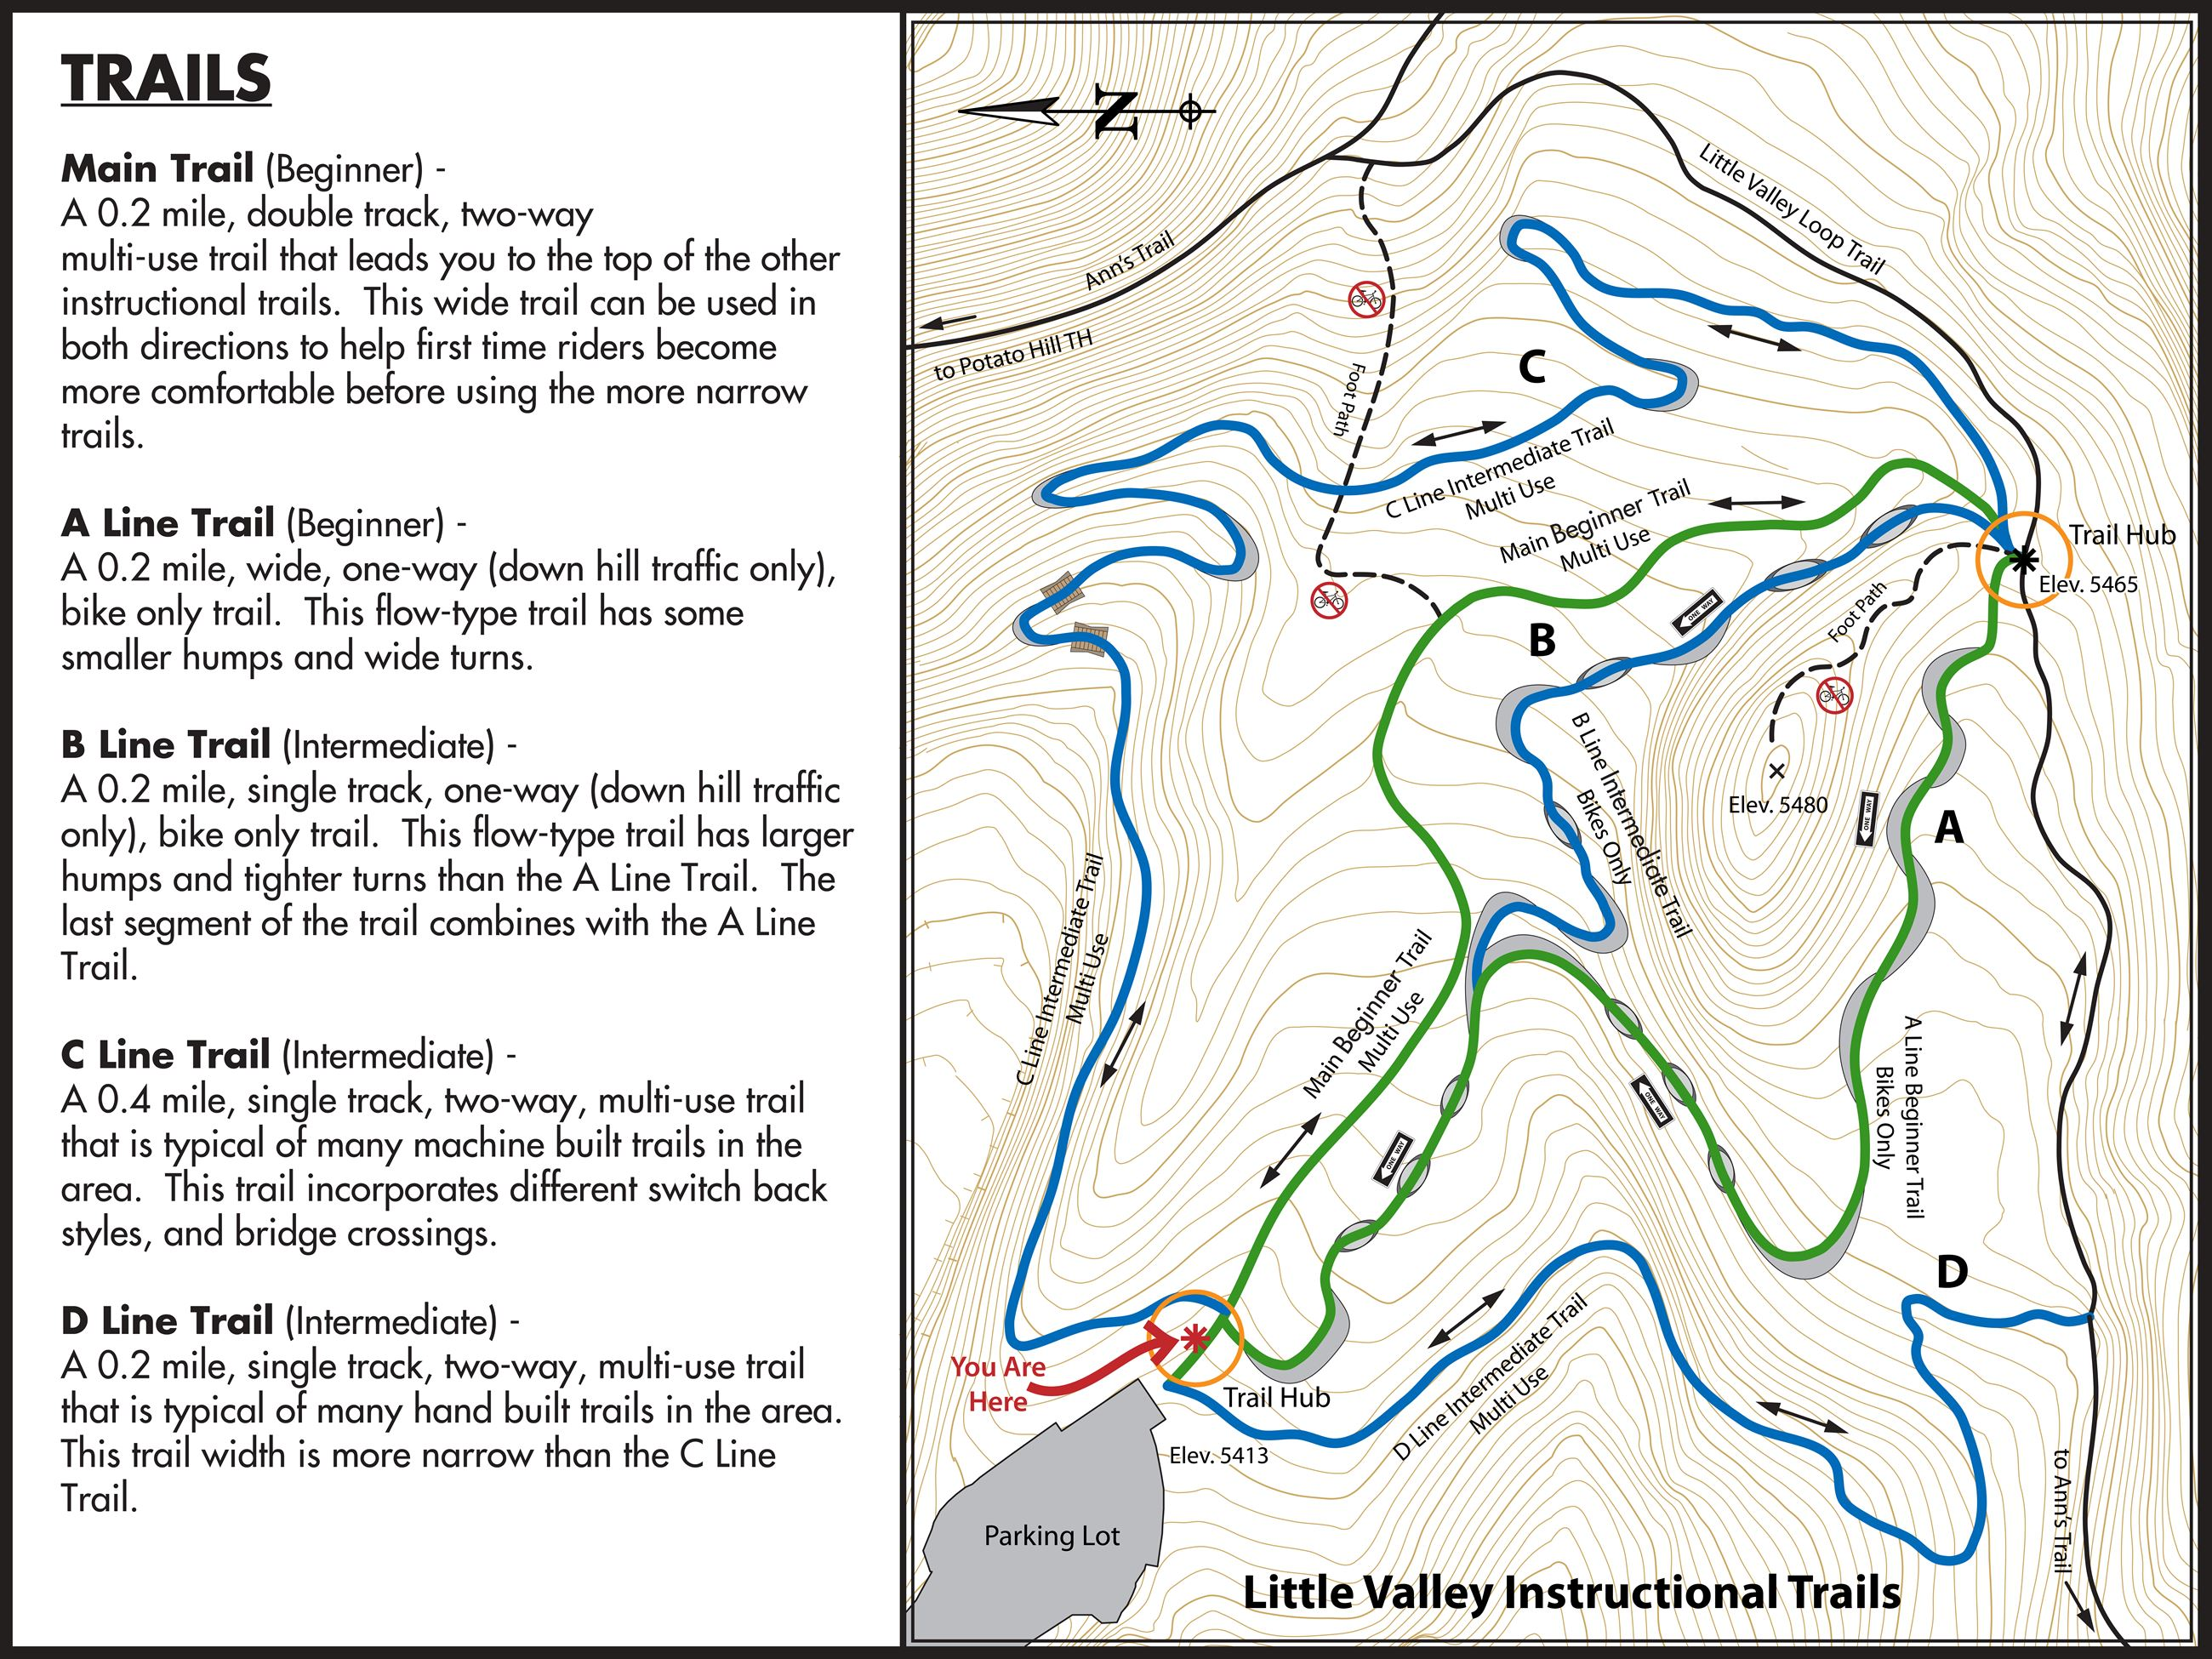 Little Valley Trails - MAP 23June2015